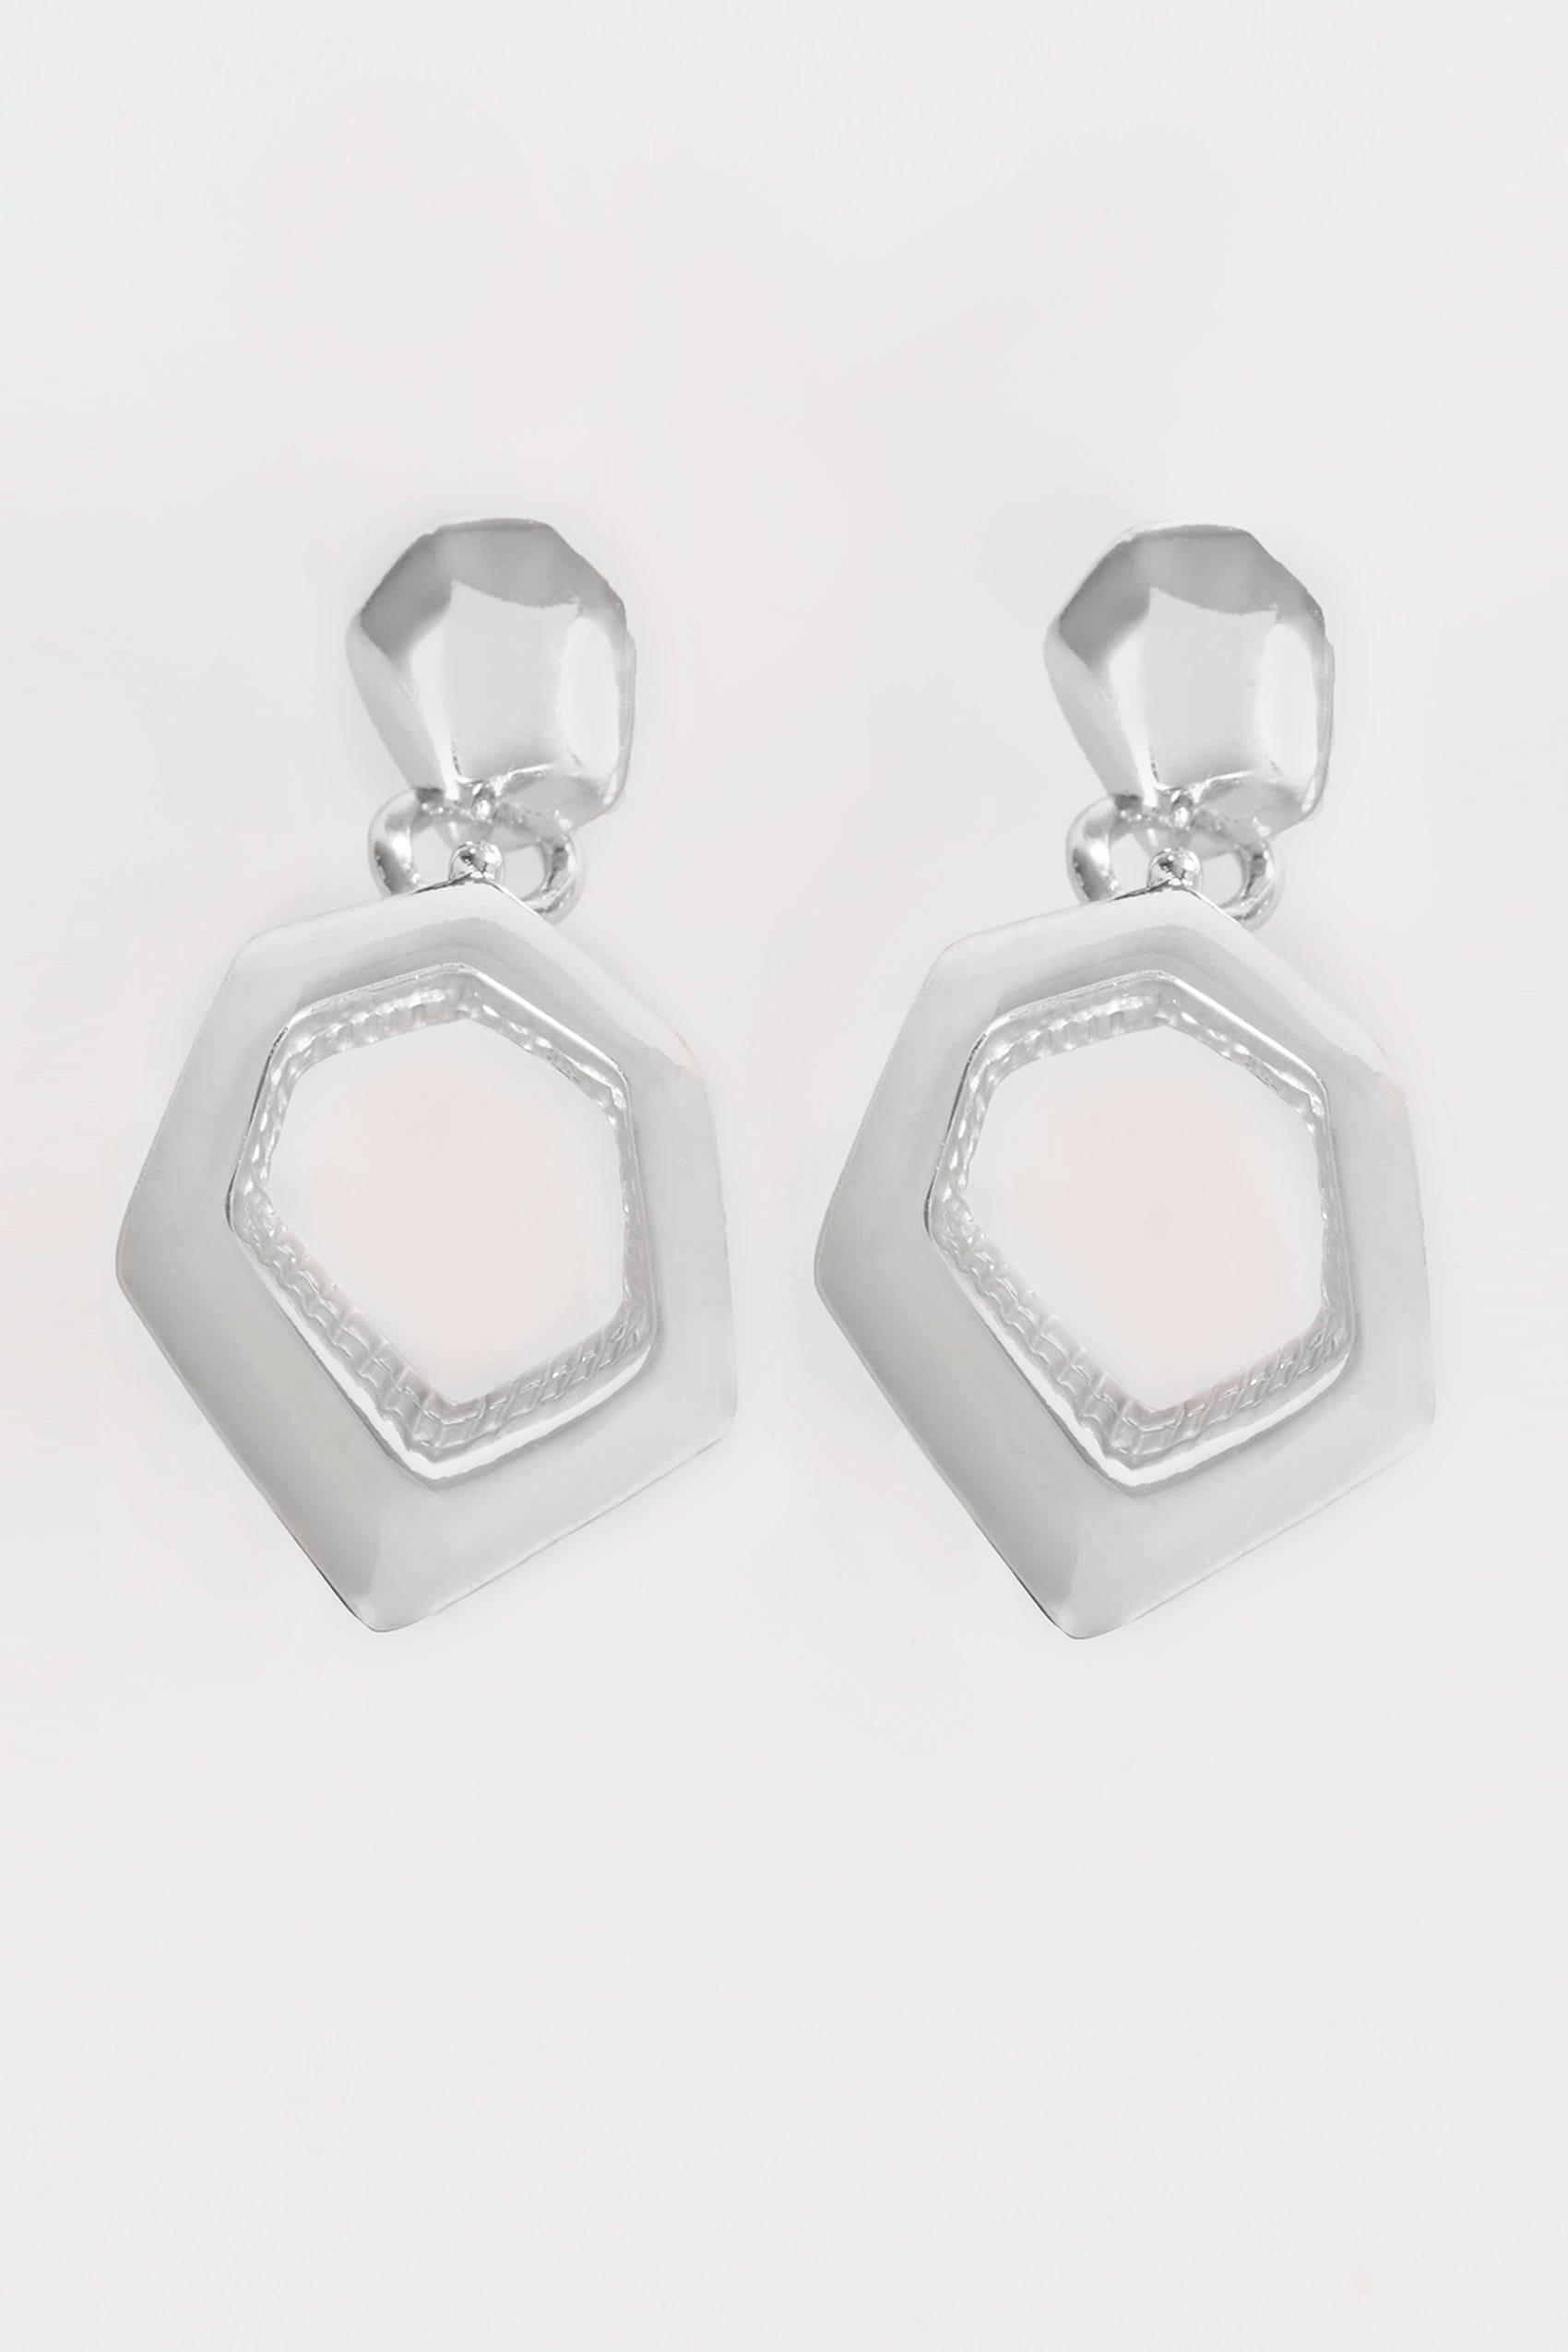 hexagon earrings kate jewellery